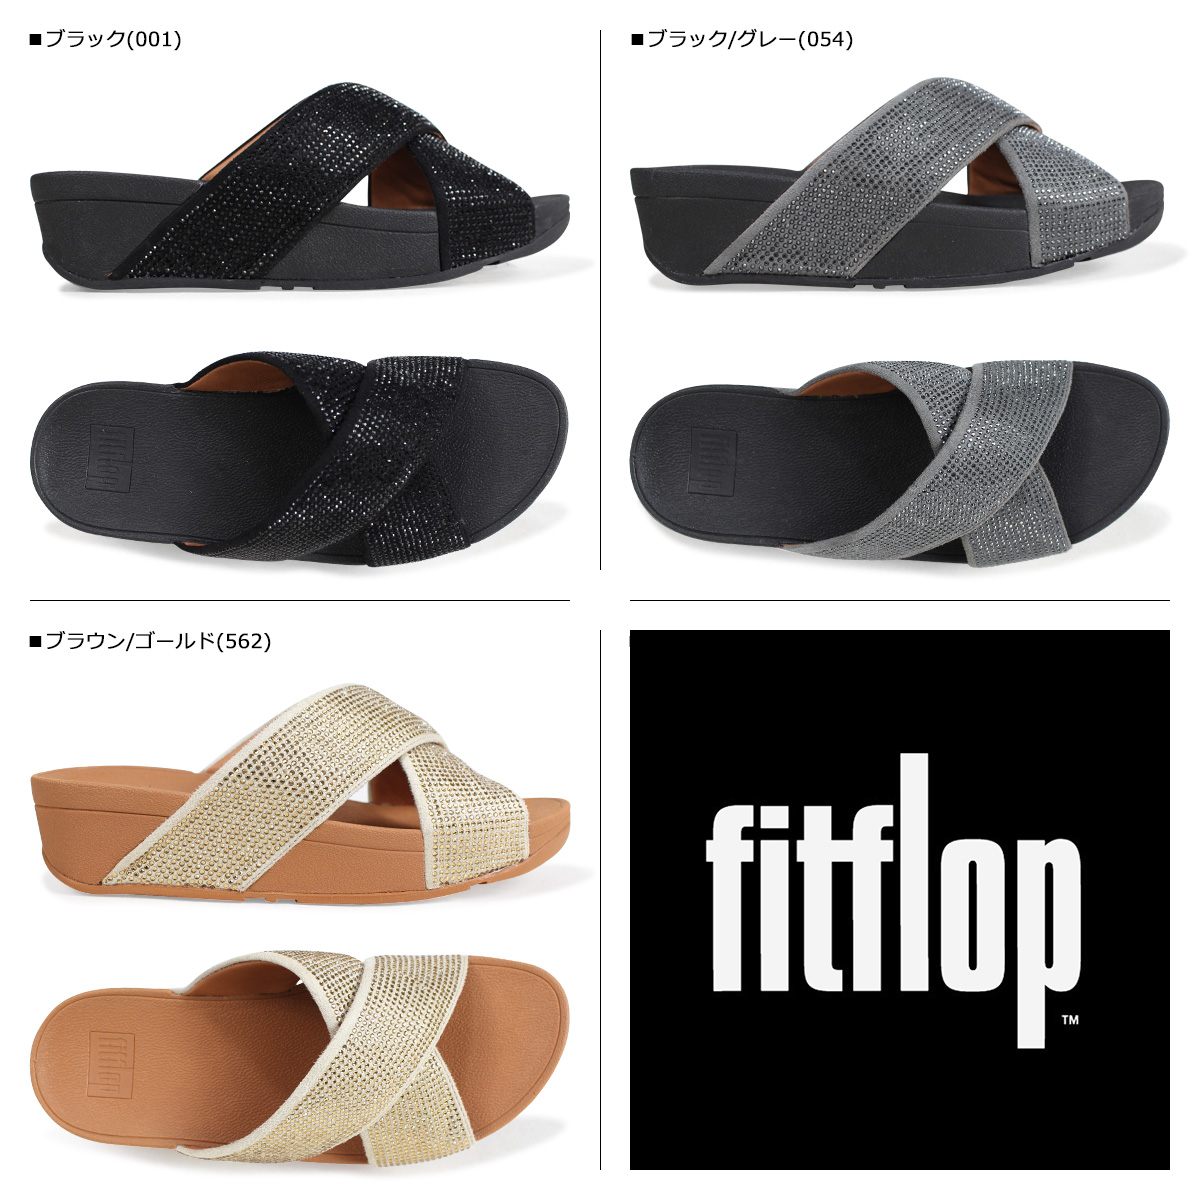 aa7b49982581 Fitting FLOP sandals FitFlop リヅィ RITZY SLIDE SANDALS Lady s M56 black brown   4 4 Shinnyu load